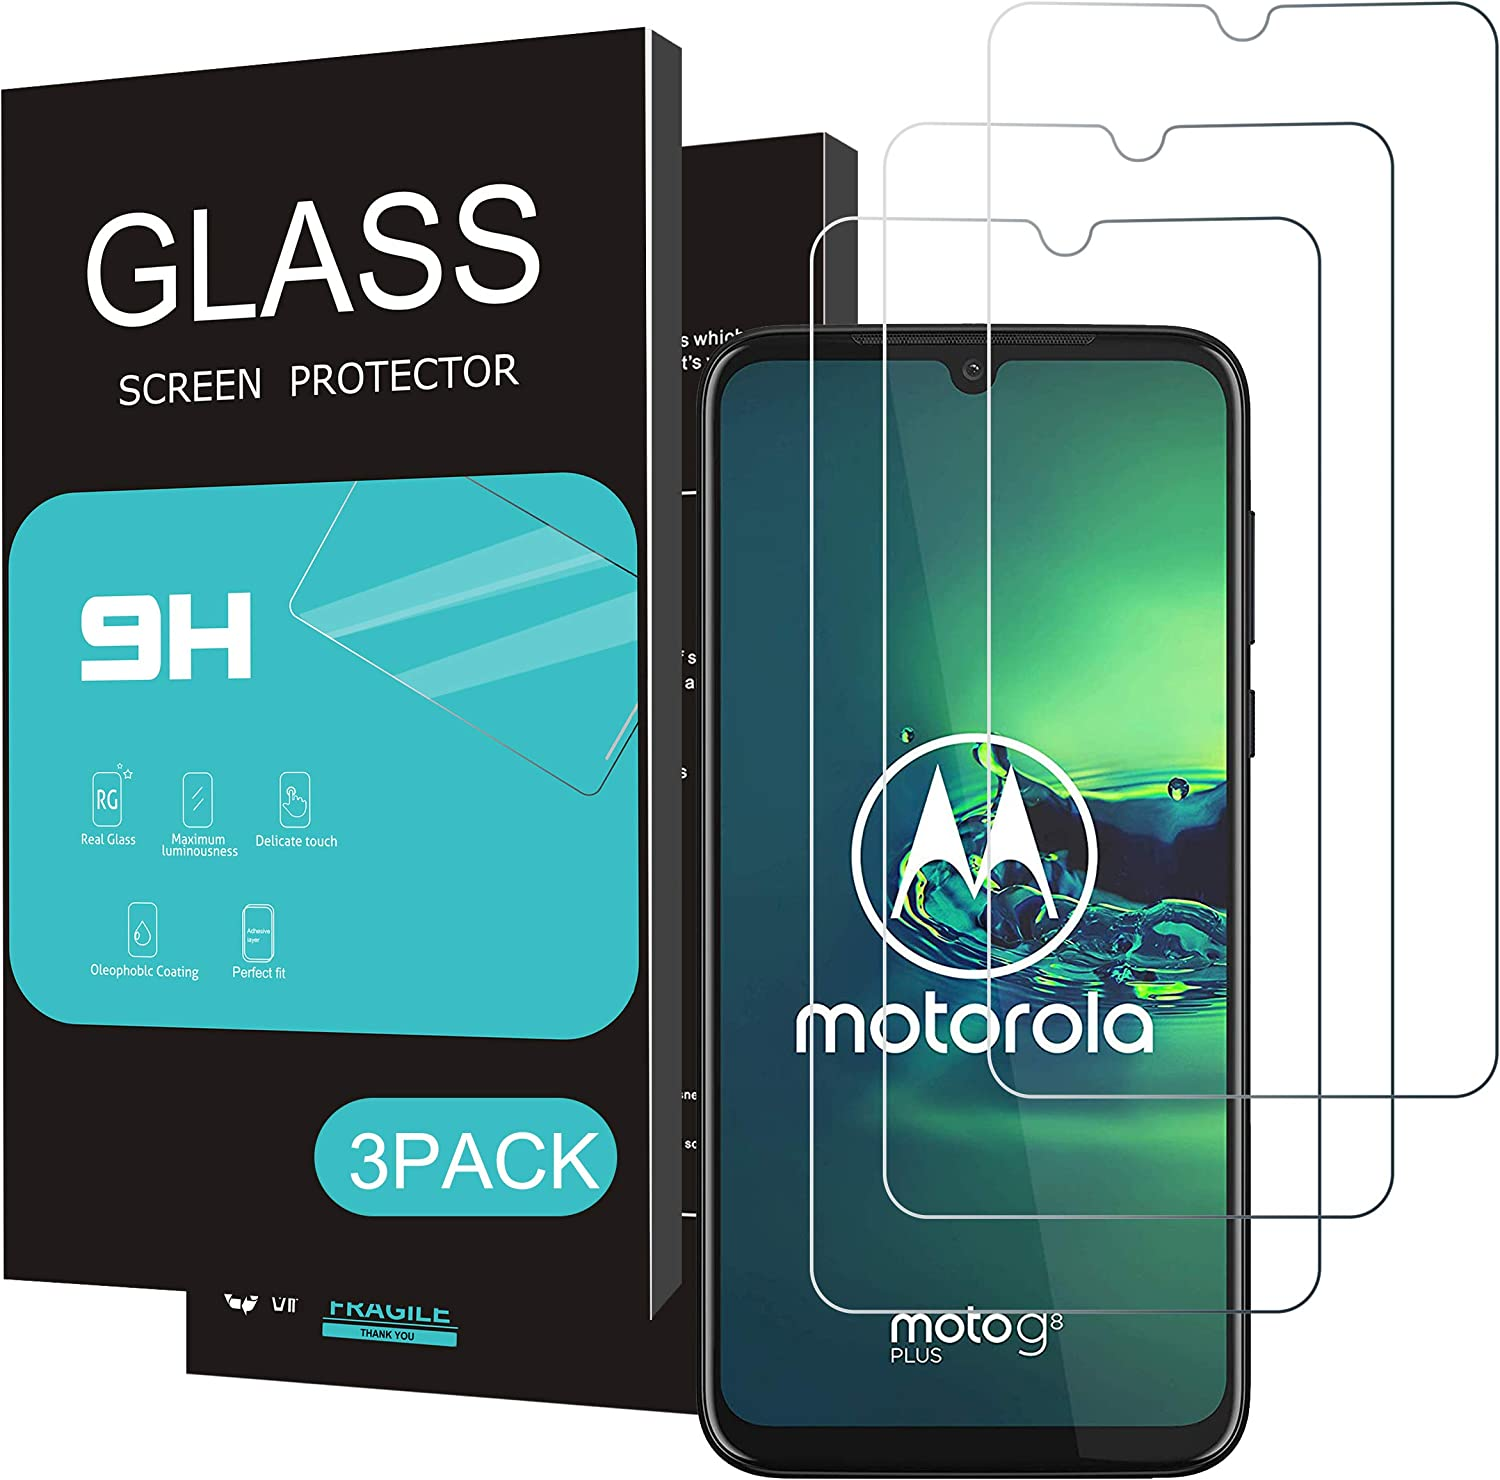 Homemo Screen Protector for Moto G8 Plus 3Pack 2.5D Edge Tempered Glass for Moto G8 Plus Anti Scratch Case Friendly Not for G8 Power lite